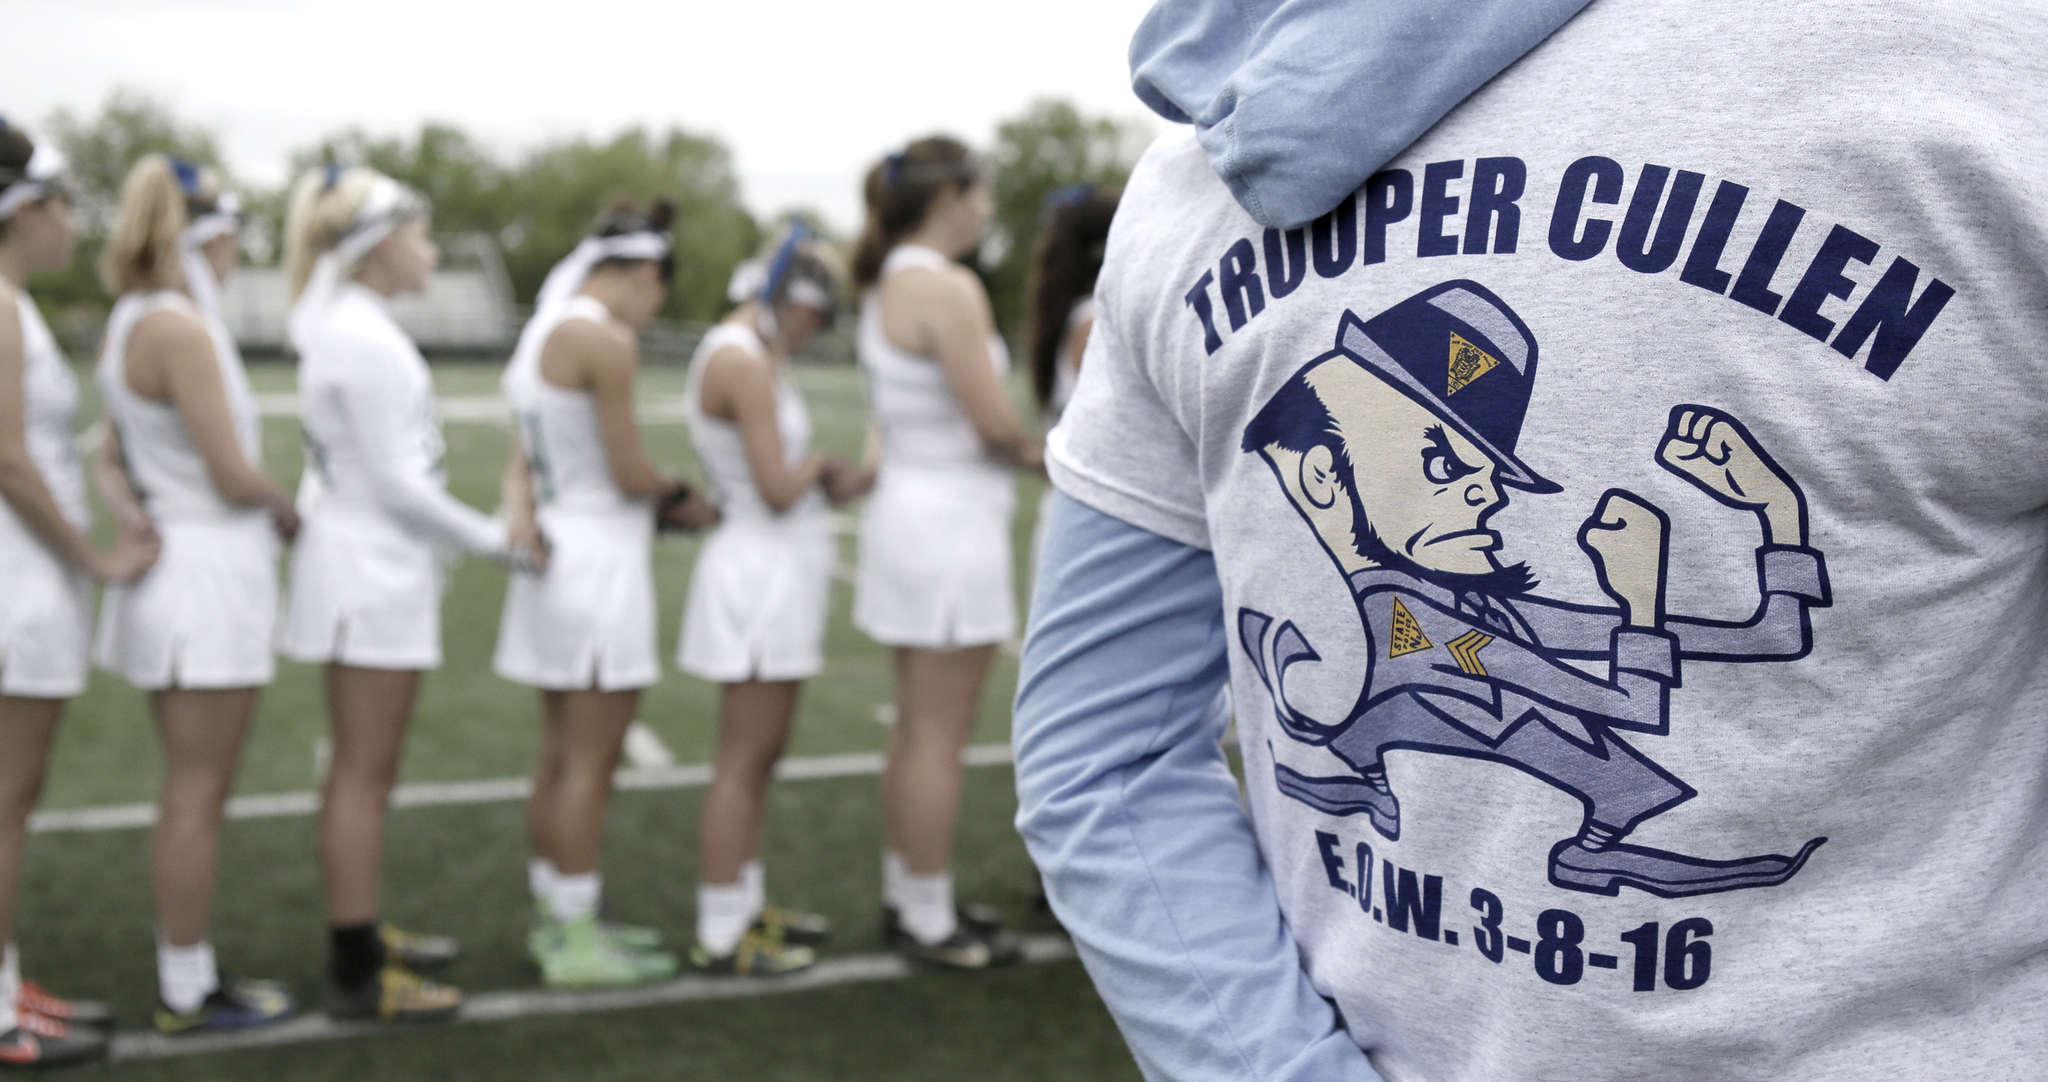 Camden Catholic girls´ lacrosse players line up for a moment of silence for N.J. Trooper Sean Cullen, who was killed in a March traffic accident. ELIZABETH ROBERTSON / Staff Photographer